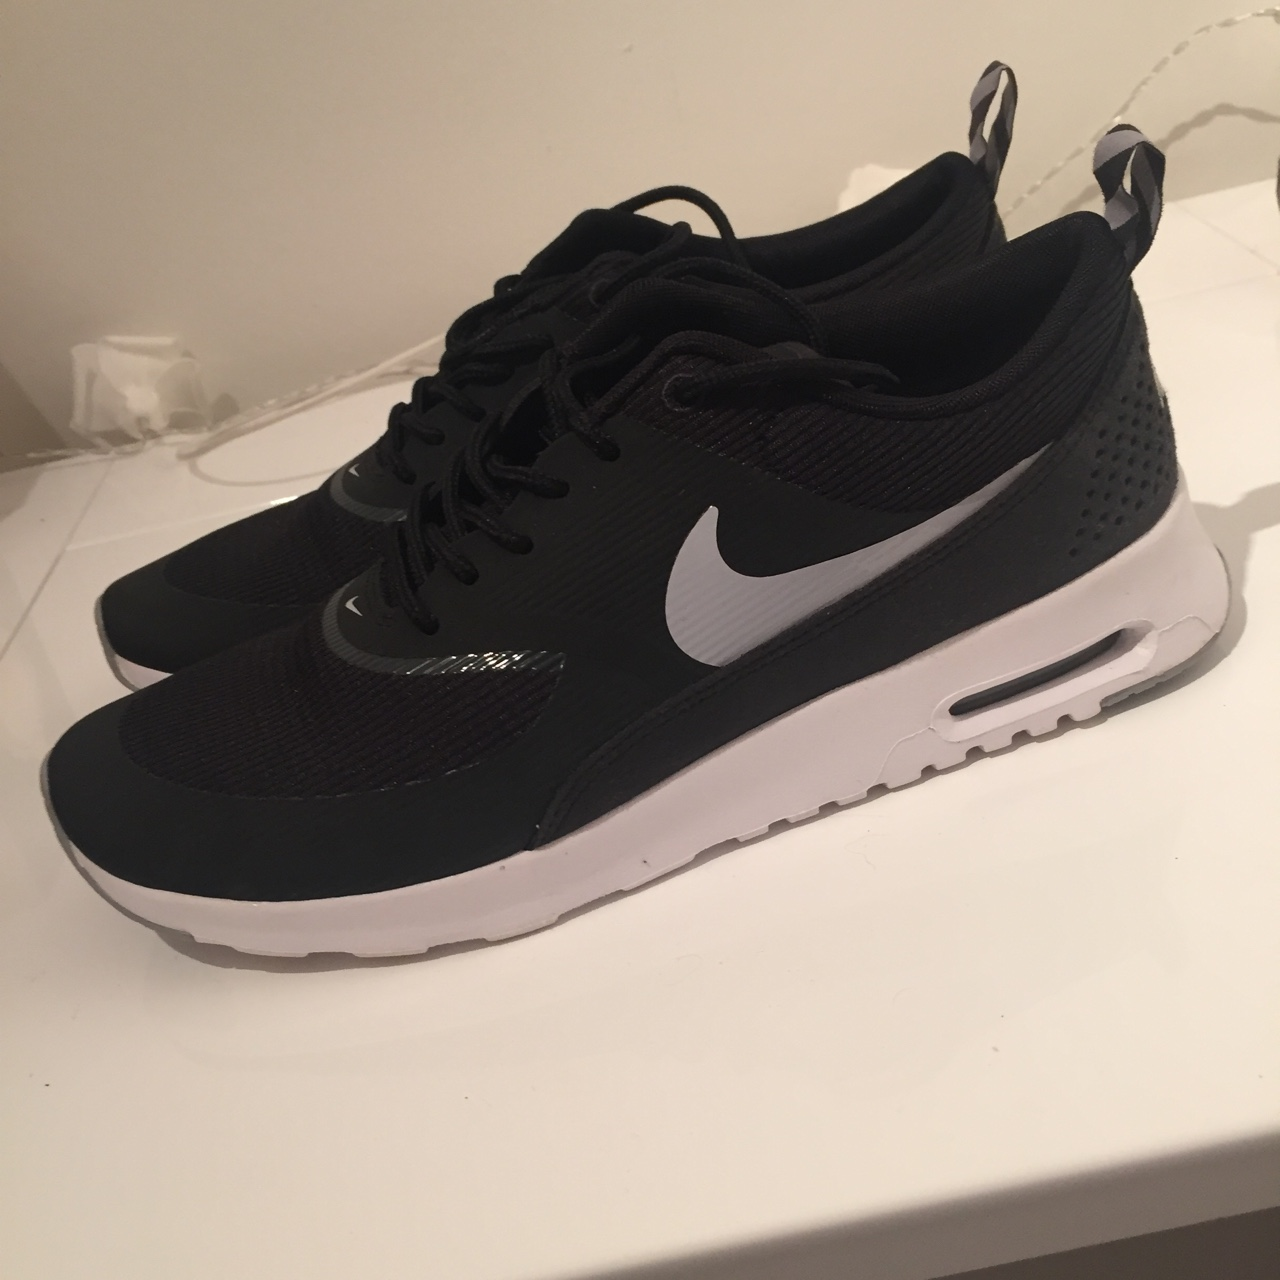 Nike Air Max Thea Black Wolf Grey White Have been Depop